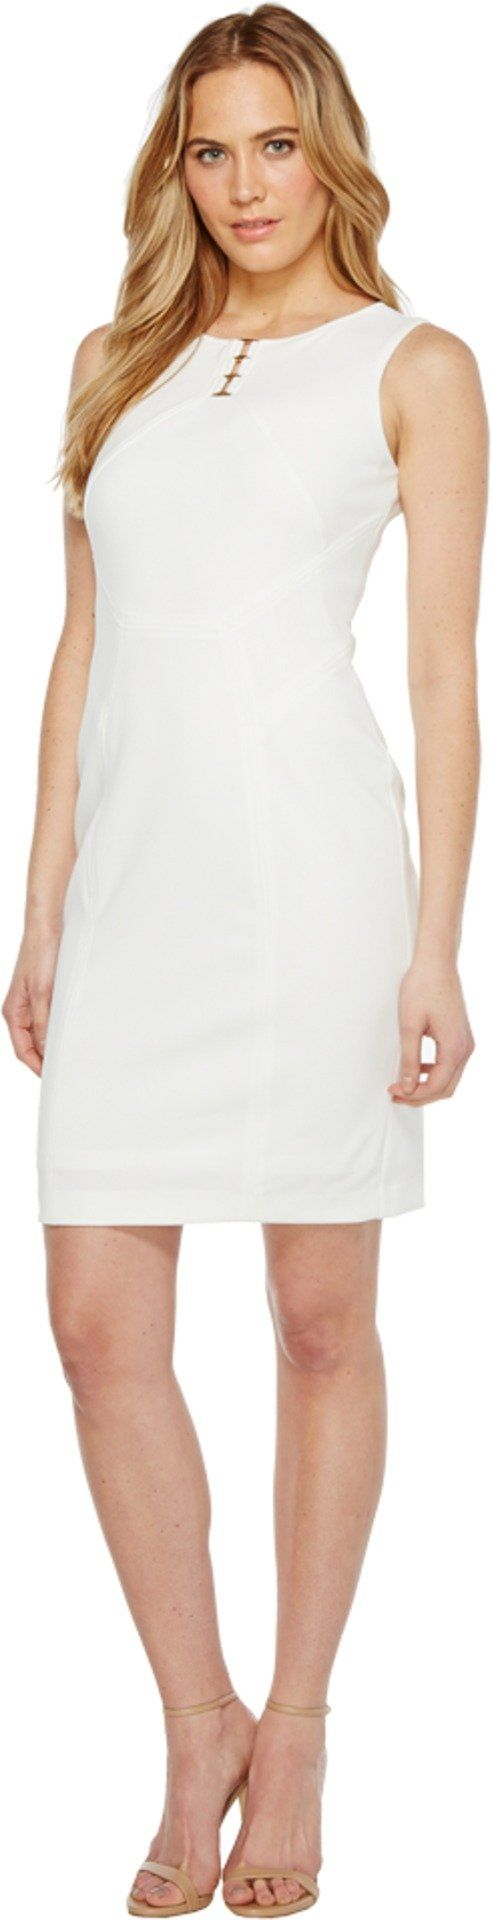 Ivanka Trump Women's Sleveeless Scuba Dress with Hardware Ivory Dress